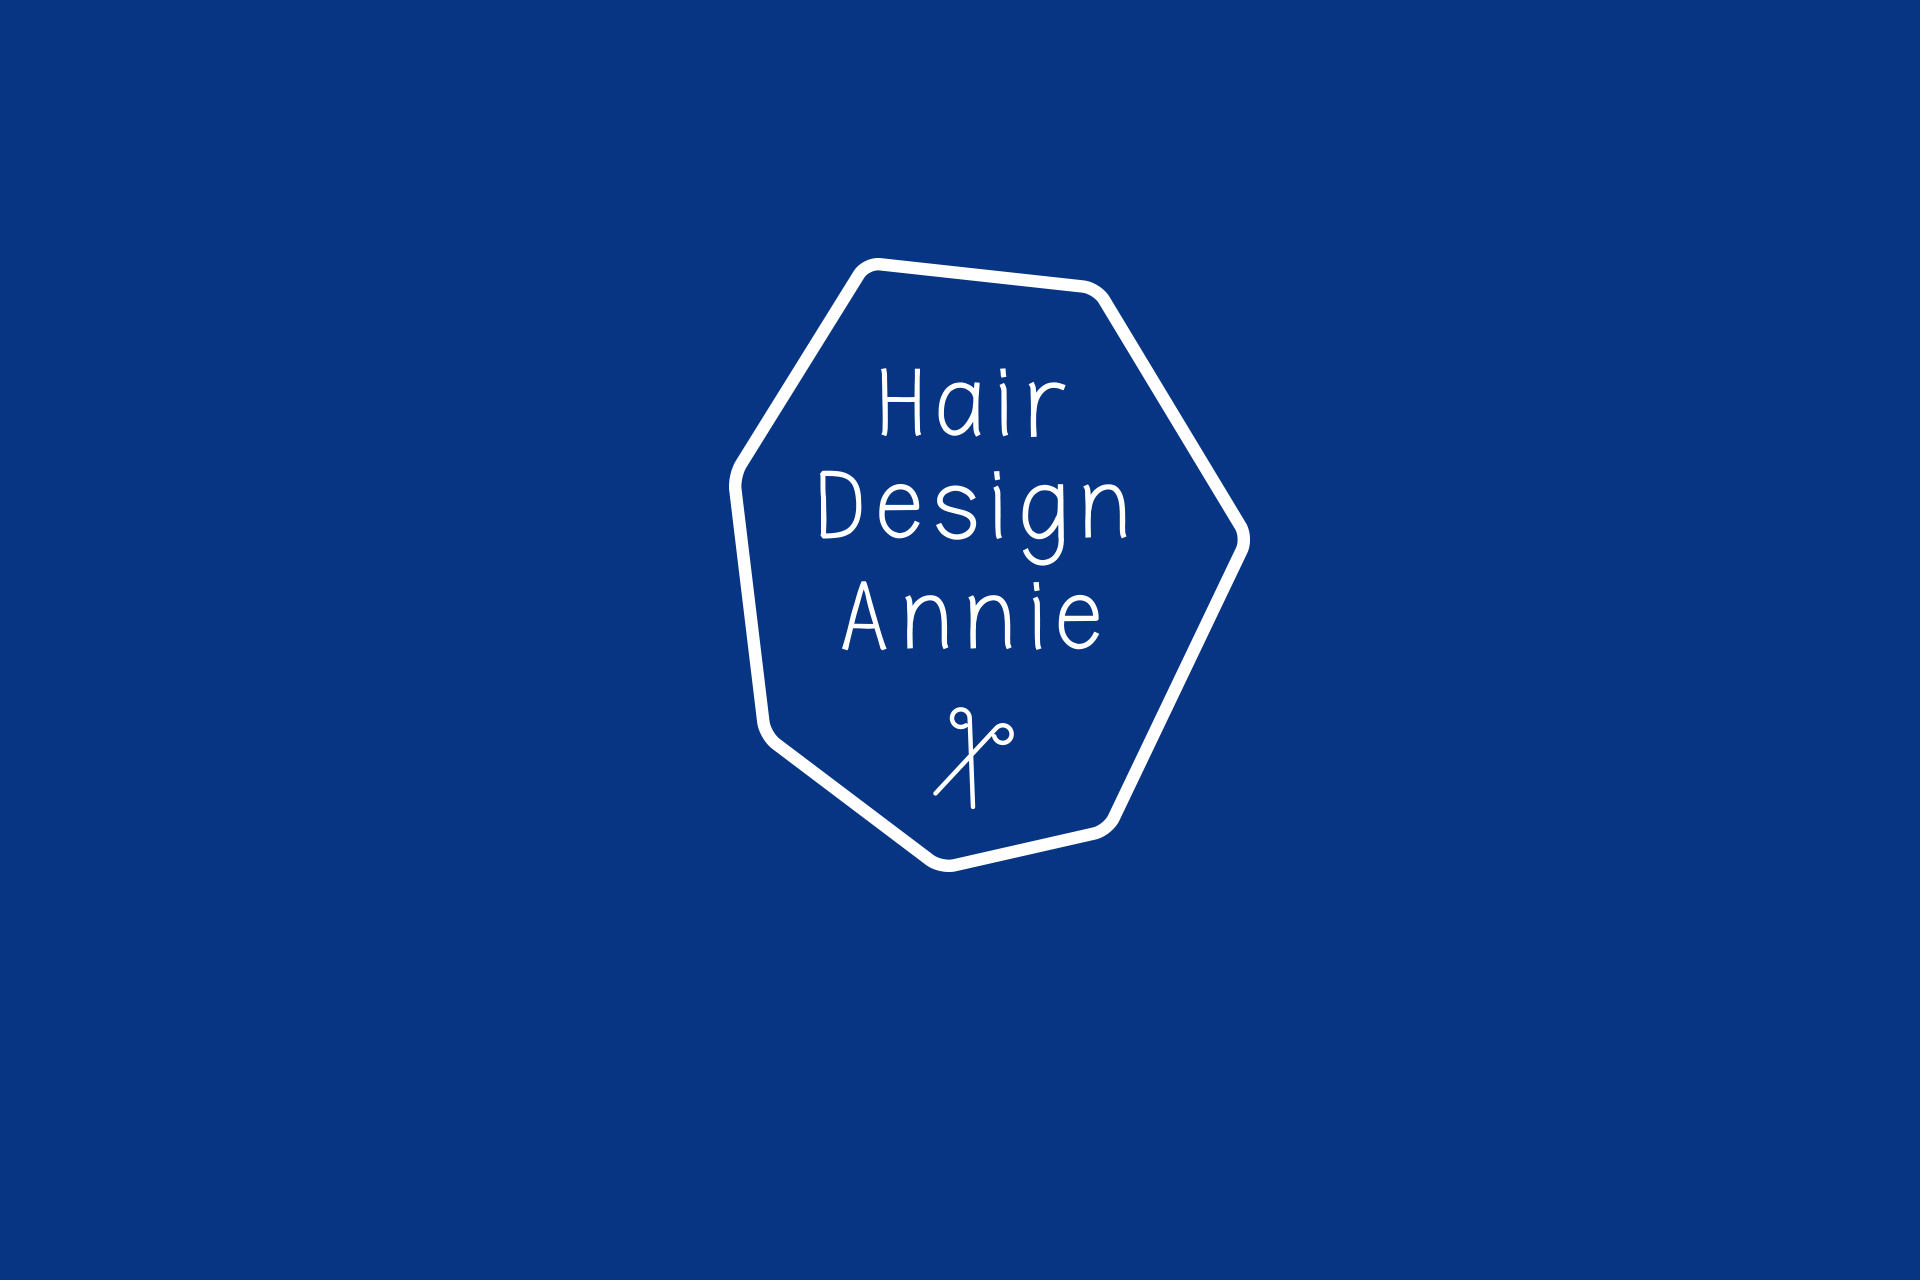 Hair Design Annie